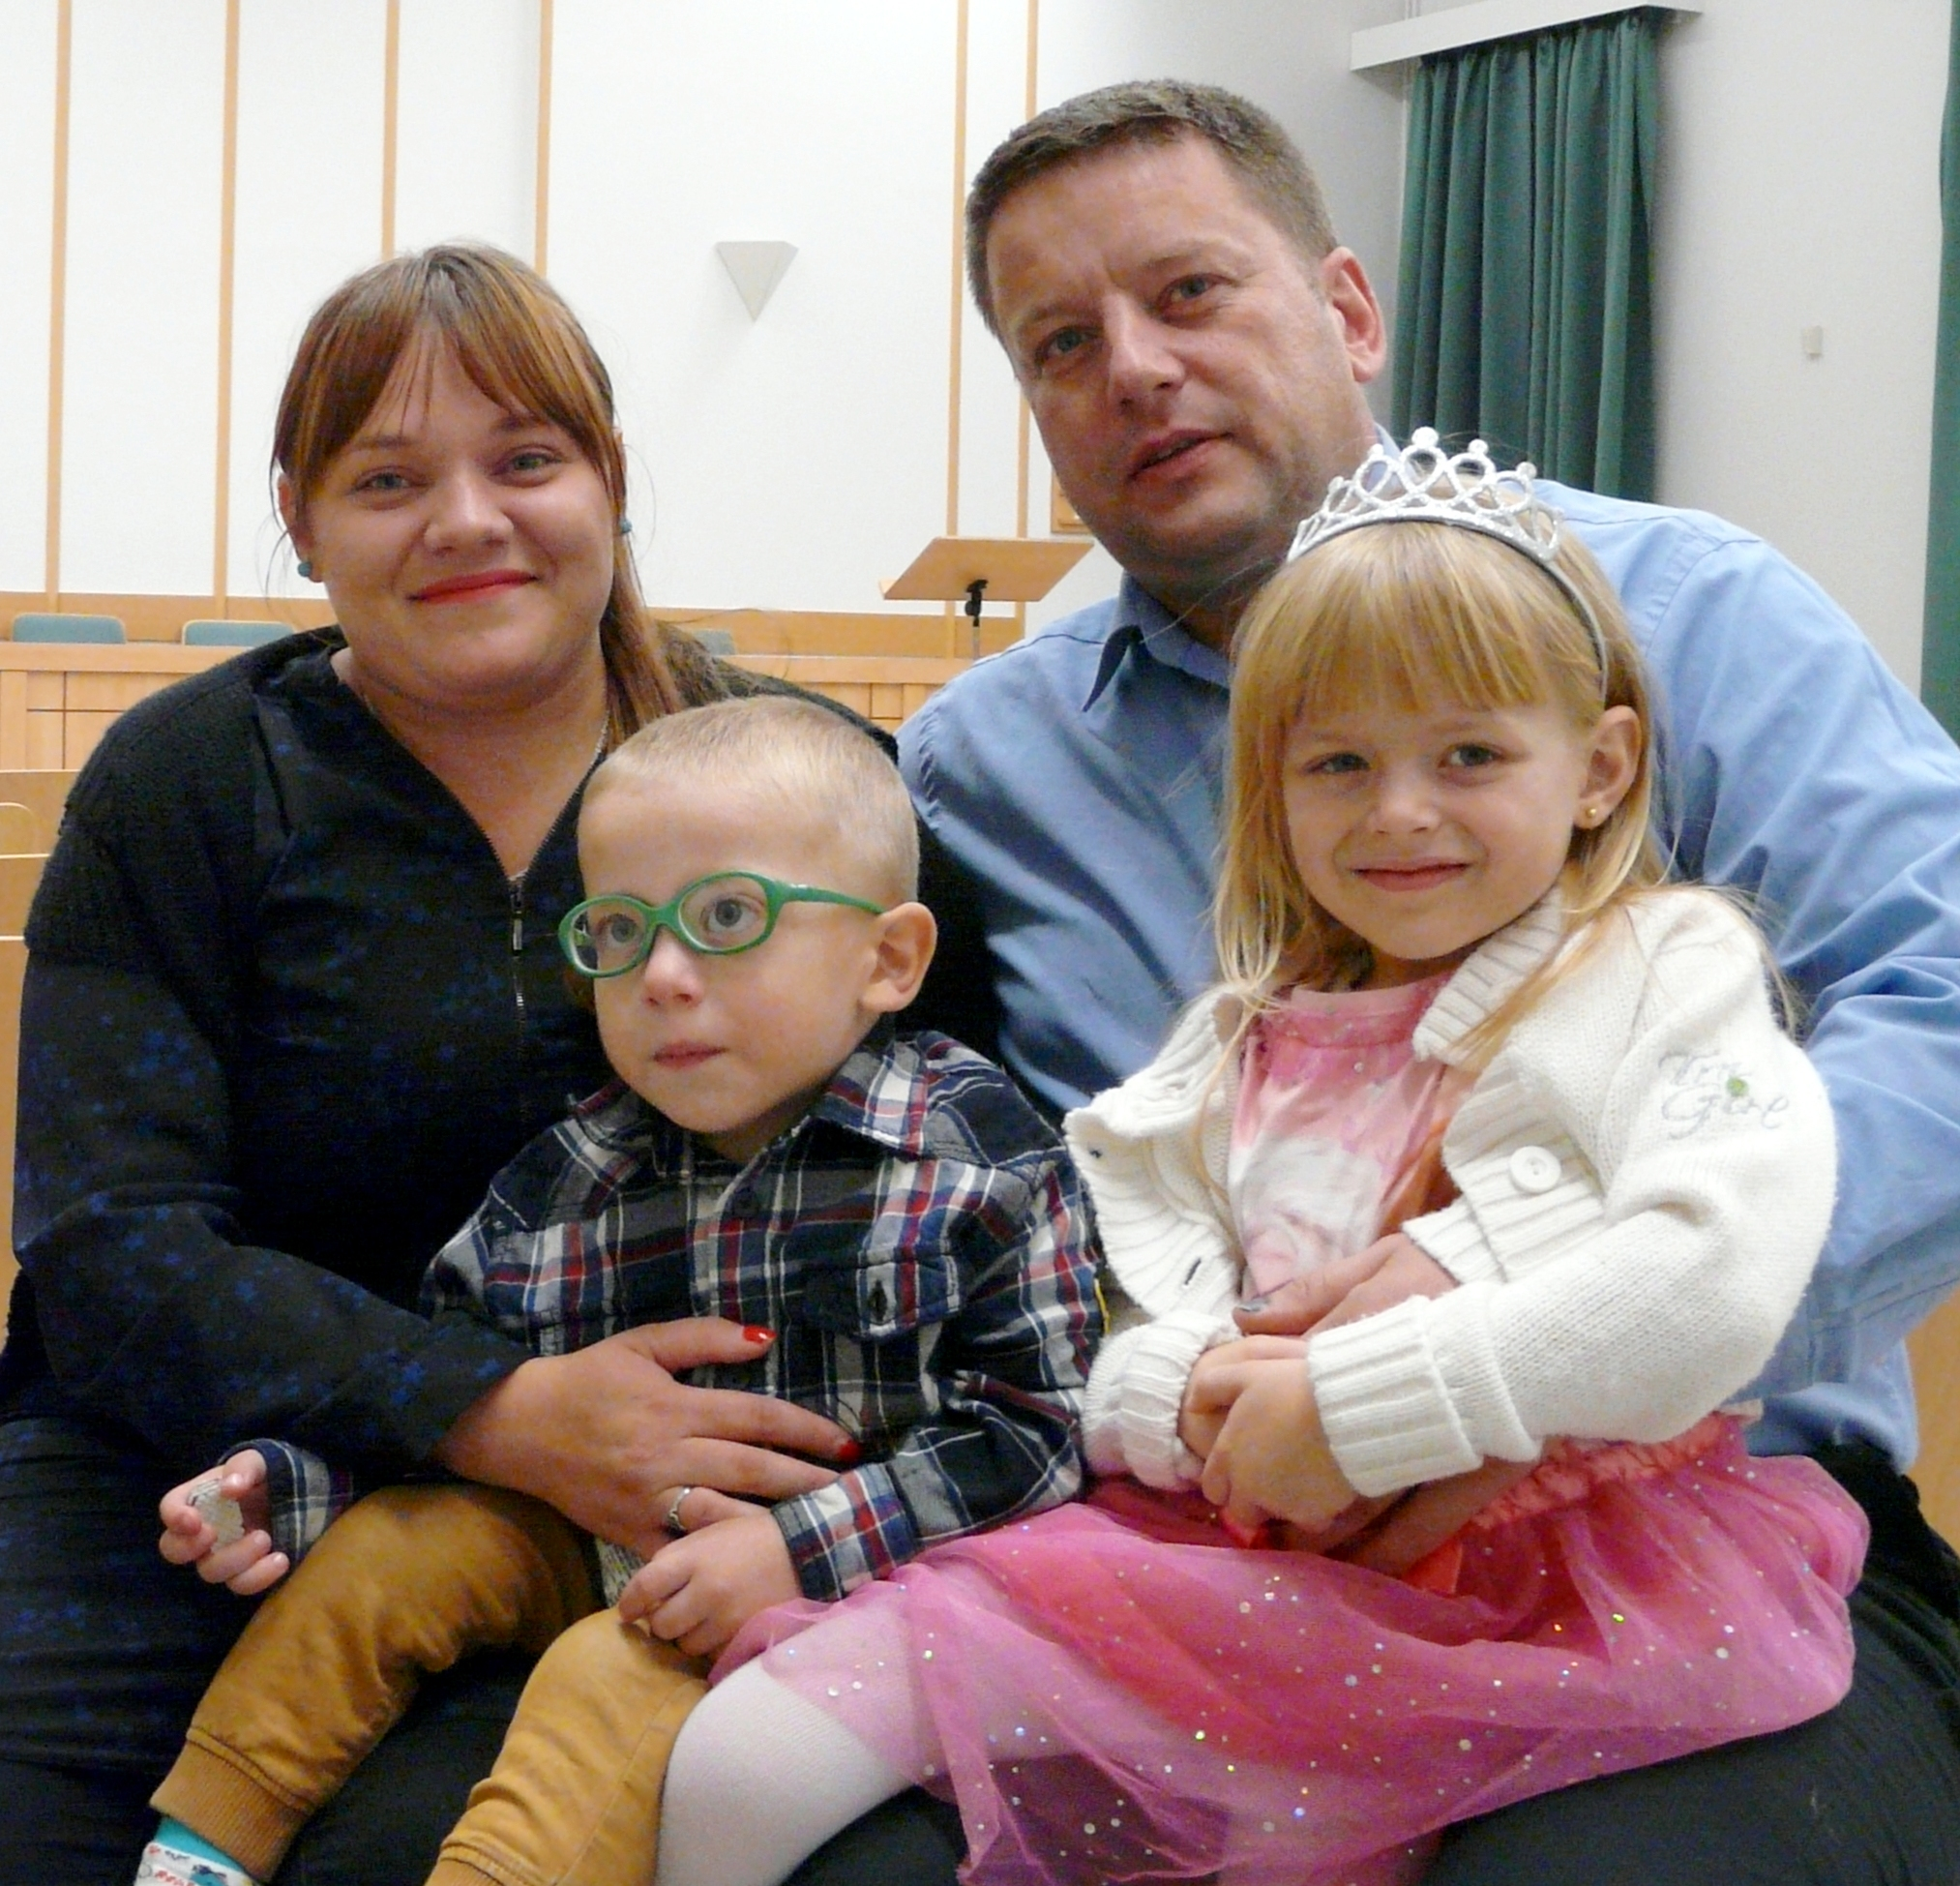 Cristina and Ivan Mescos and their children Filip, 3, and Amina, 5, attend and serve in the Brasov Branch, where Ivan is branch president.